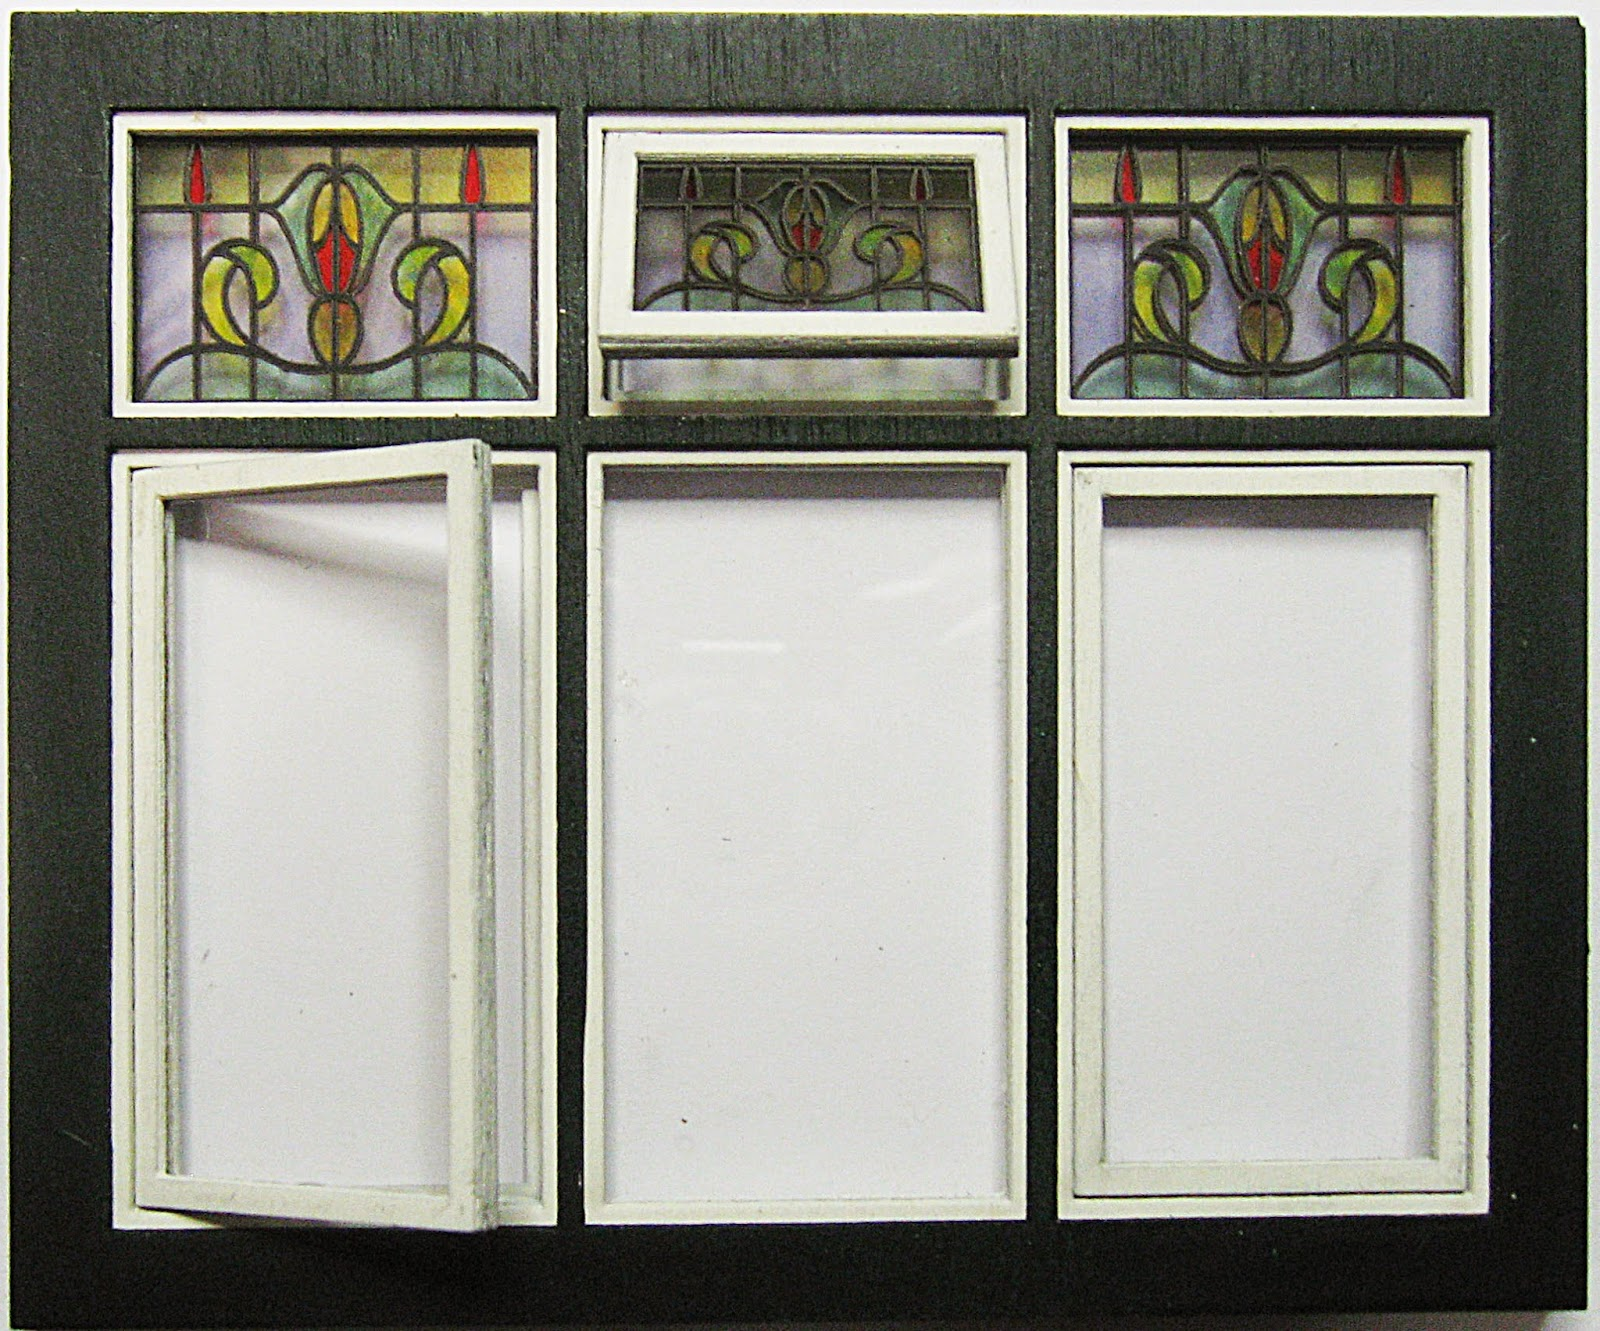 Kt miniatures journal are you in need of art nouveau or for 1920s window styles